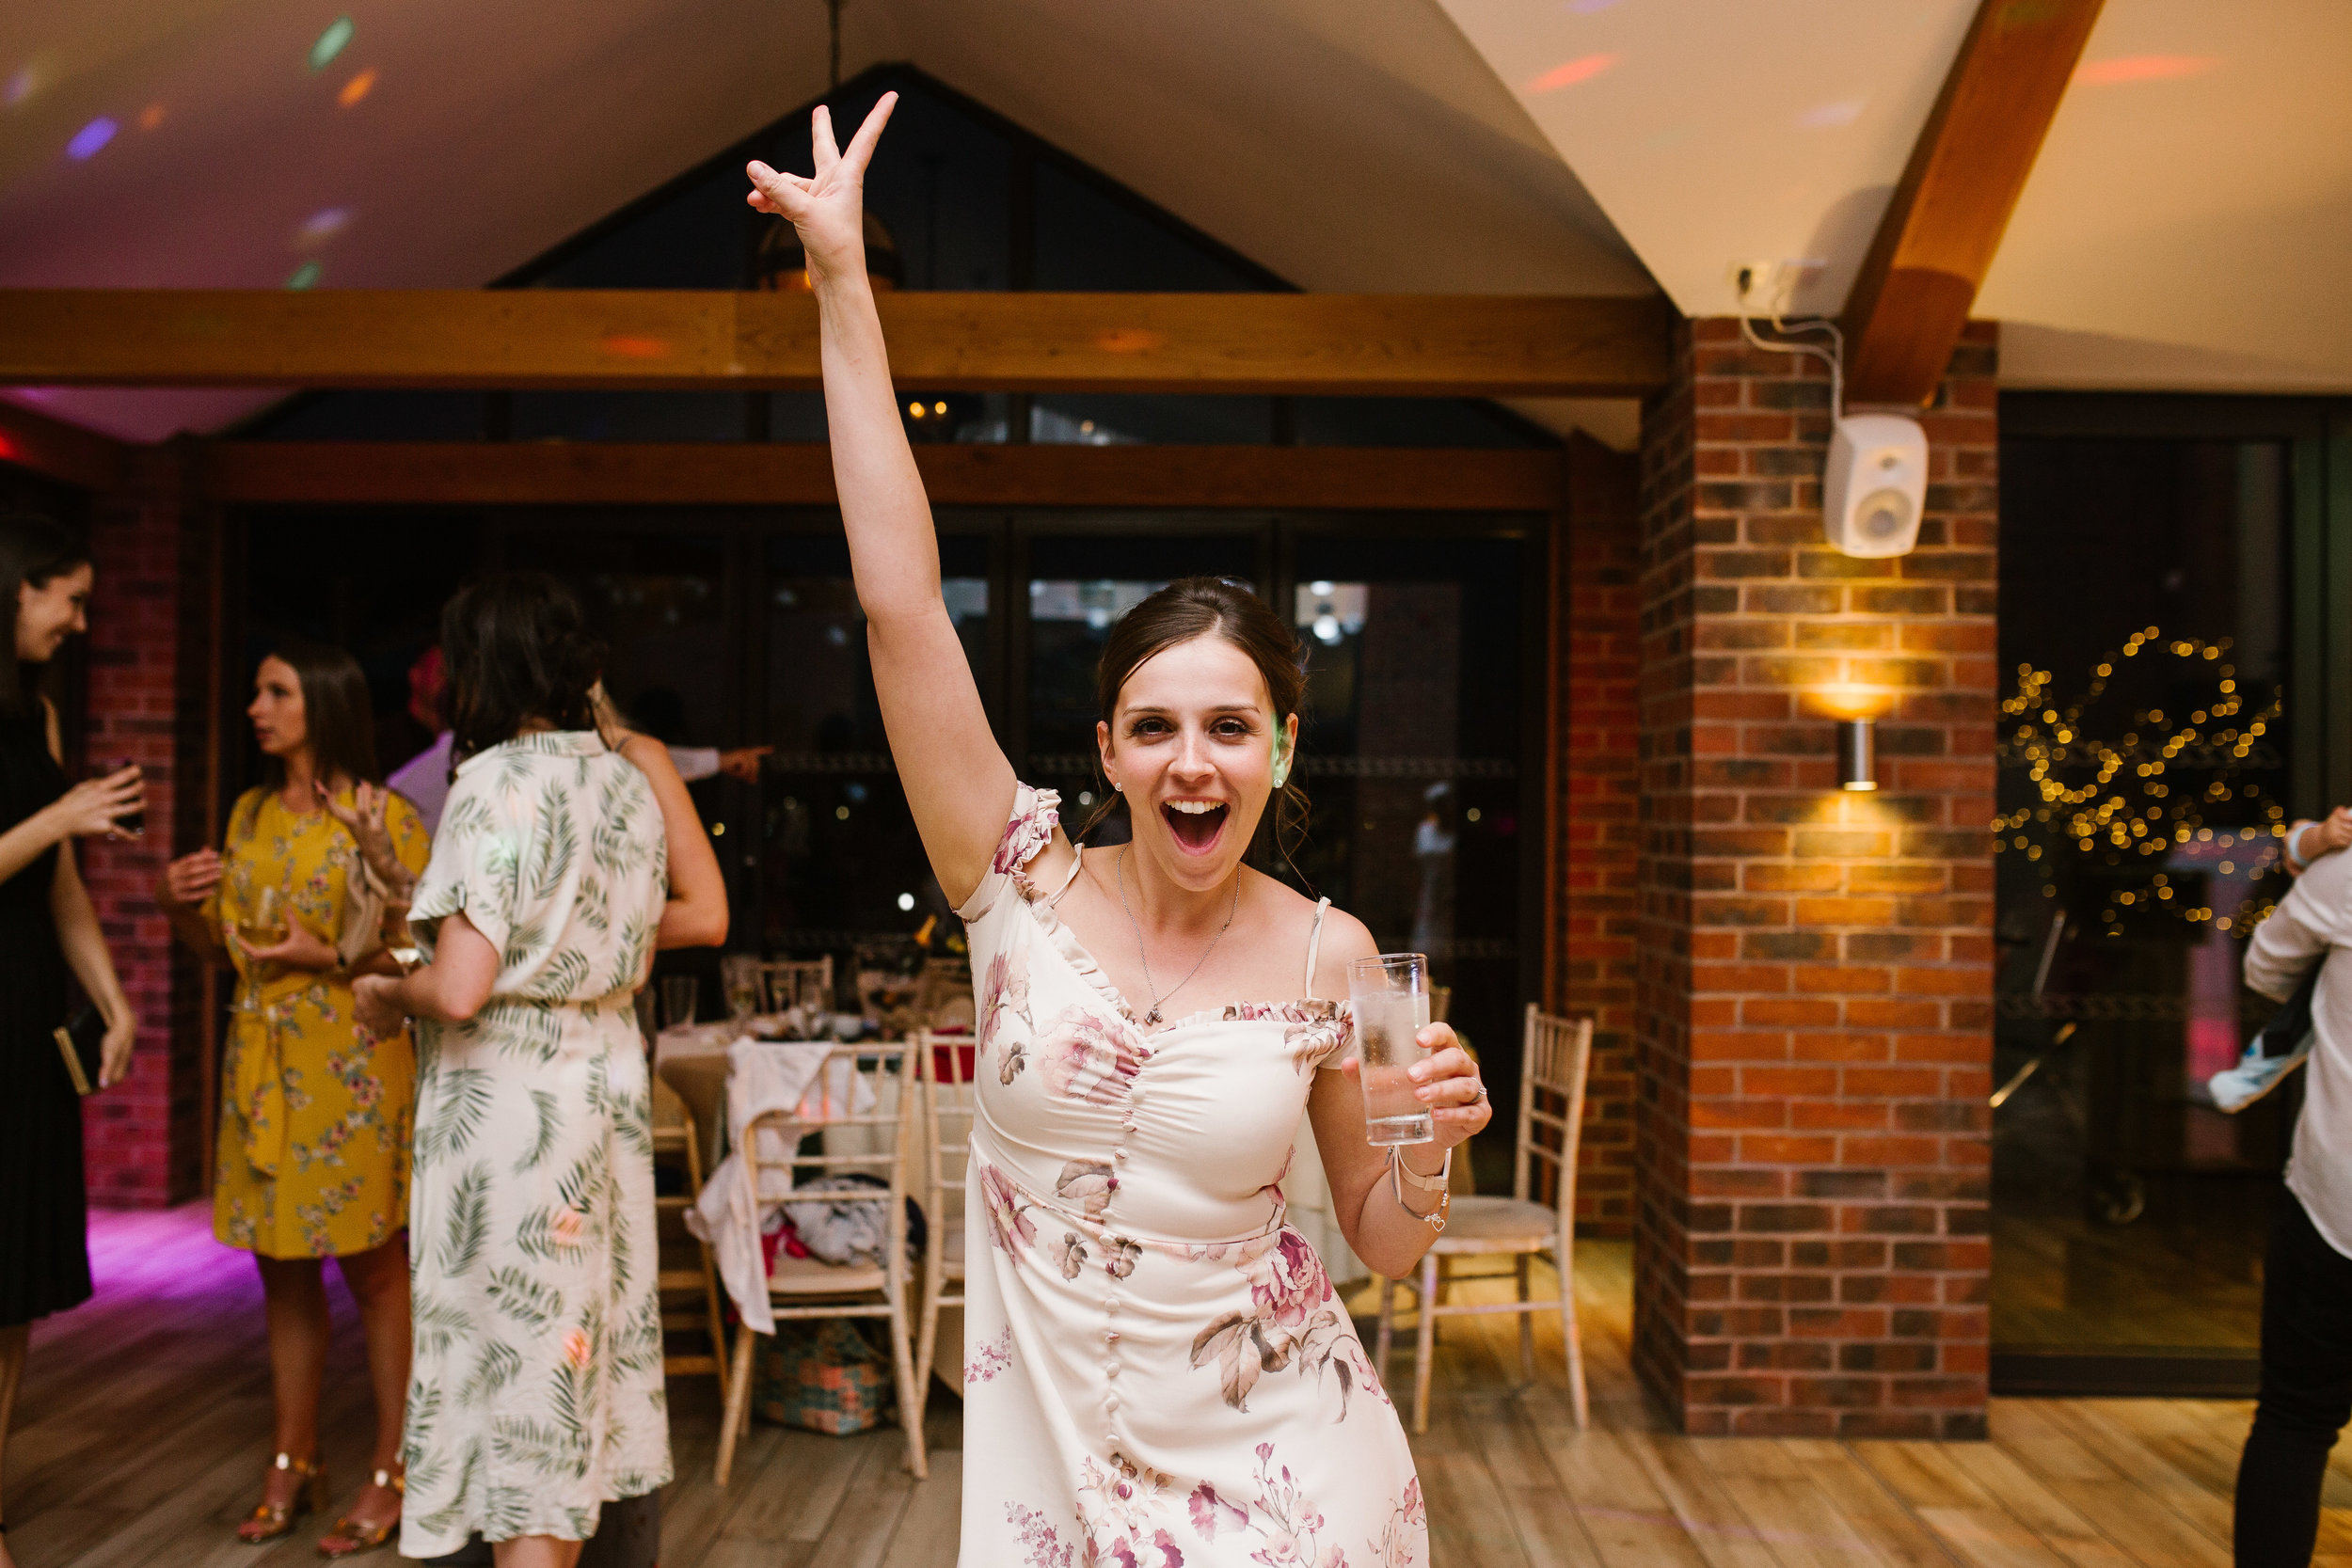 wedding guests celebrating with her hands in the air cheering